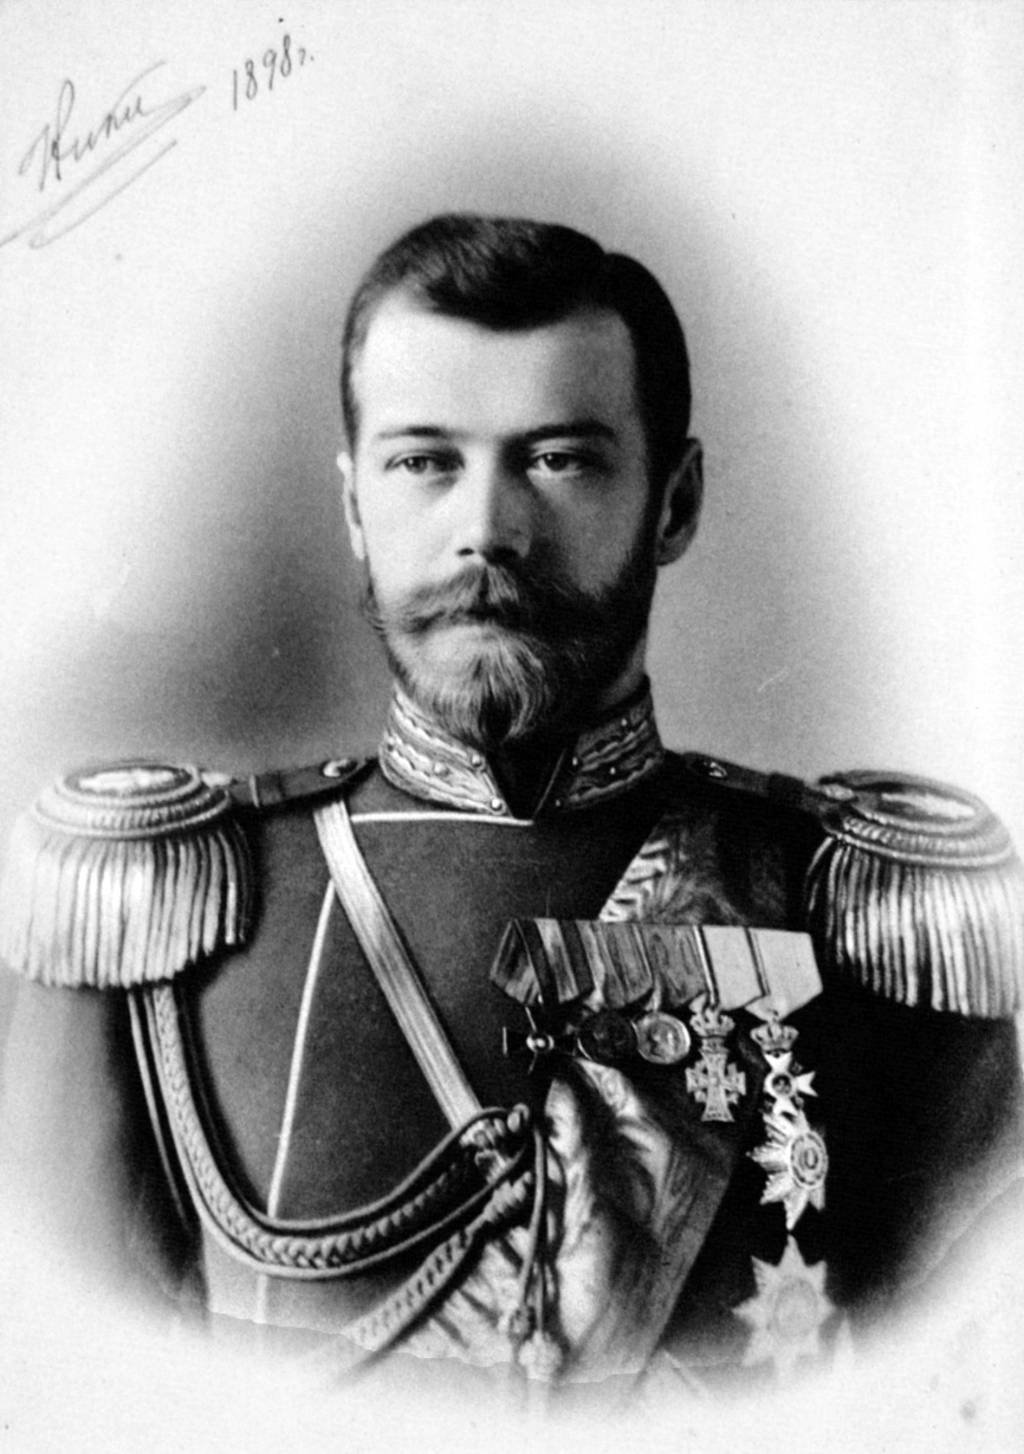 why couldn t the regime of nicholas ii reform itself in the years english photo taken by a a pasetti of tsar nicholas ii of russia near age